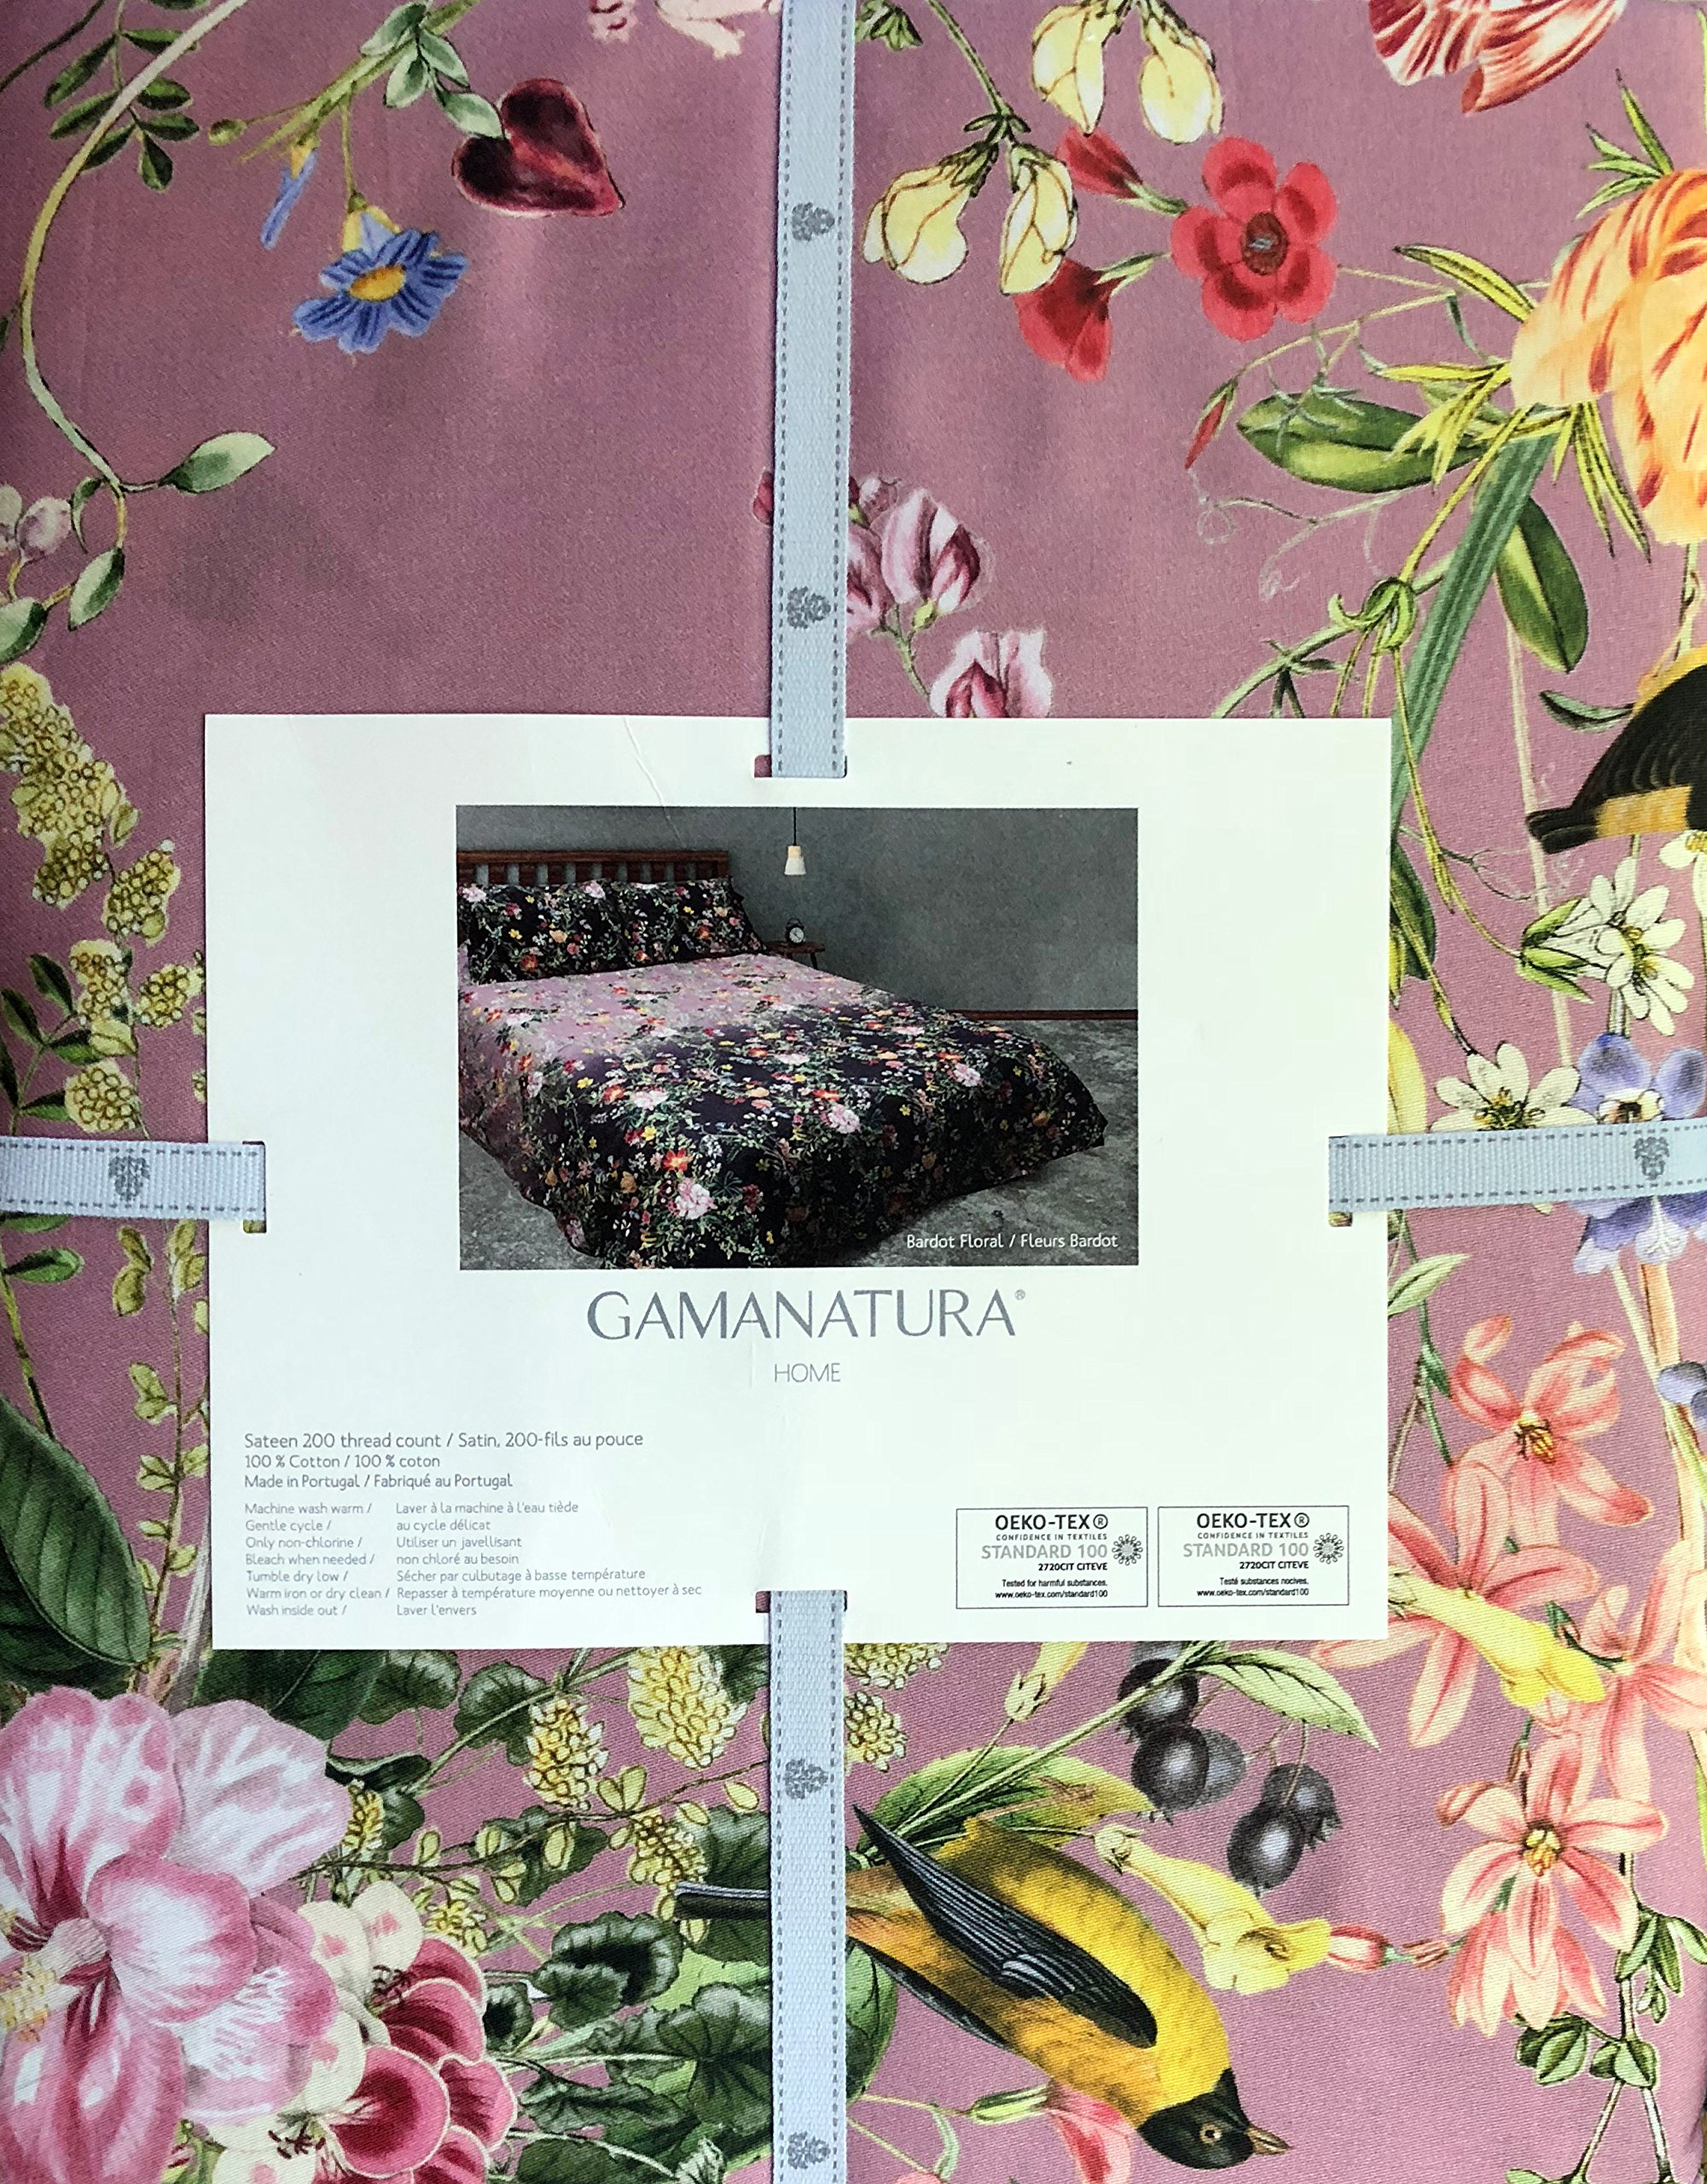 CDM product Gamanatura Home Bedding 3 Piece Queen Size Bed Duvet Comforter Cover Set Rich Floral Wild Flowers Pattern in Shades of Purple Orange Red Pink Cream Green on Lavender with Yellow Birds small thumbnail image